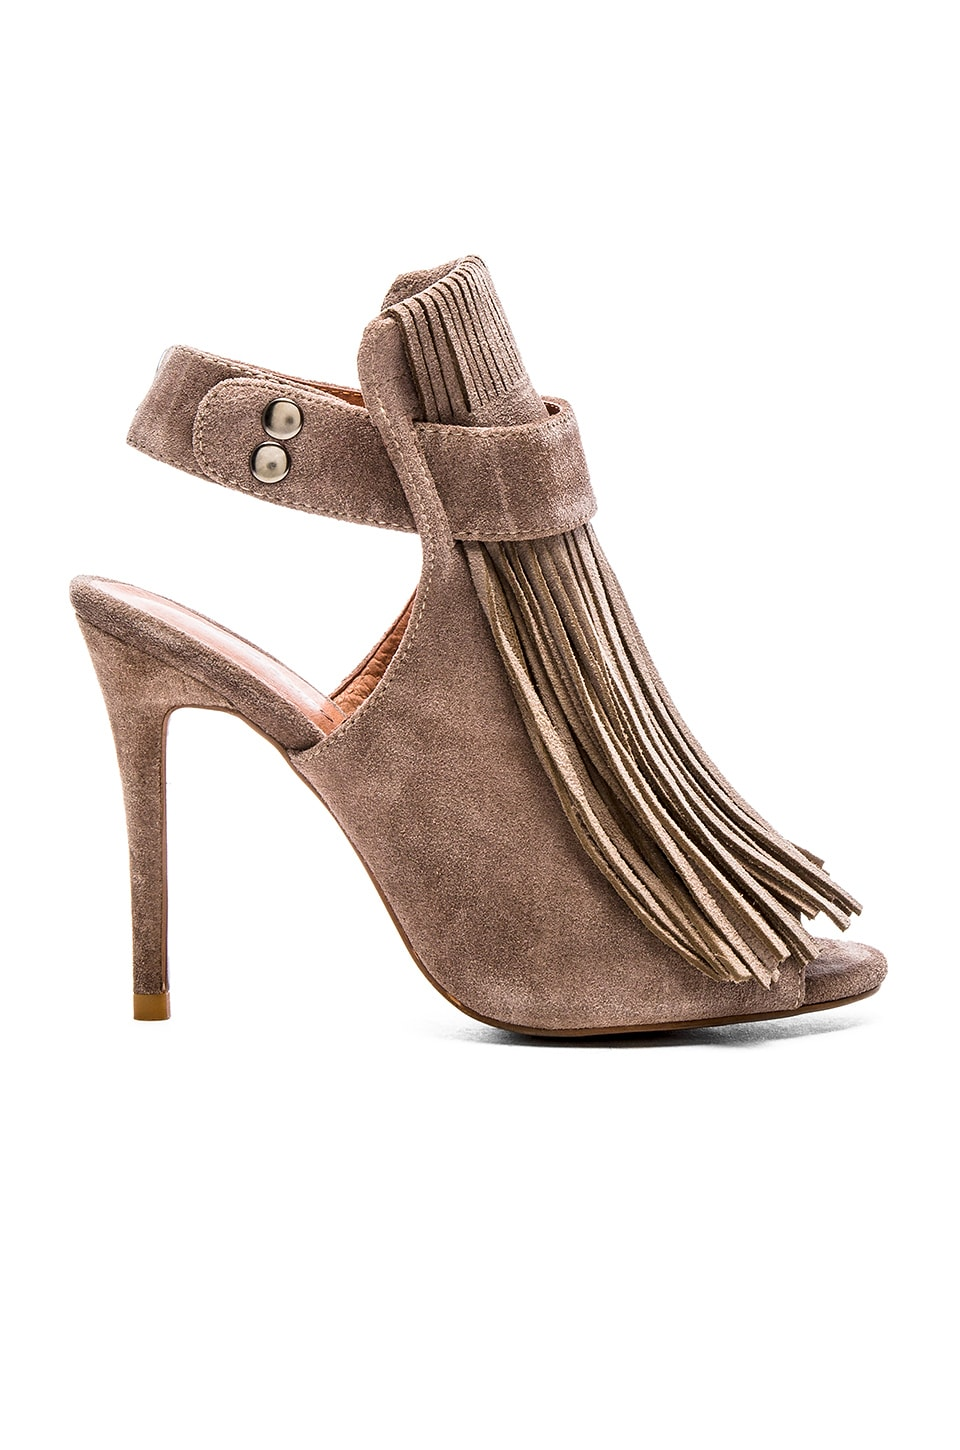 Matiko Lainey Heel in Taupe